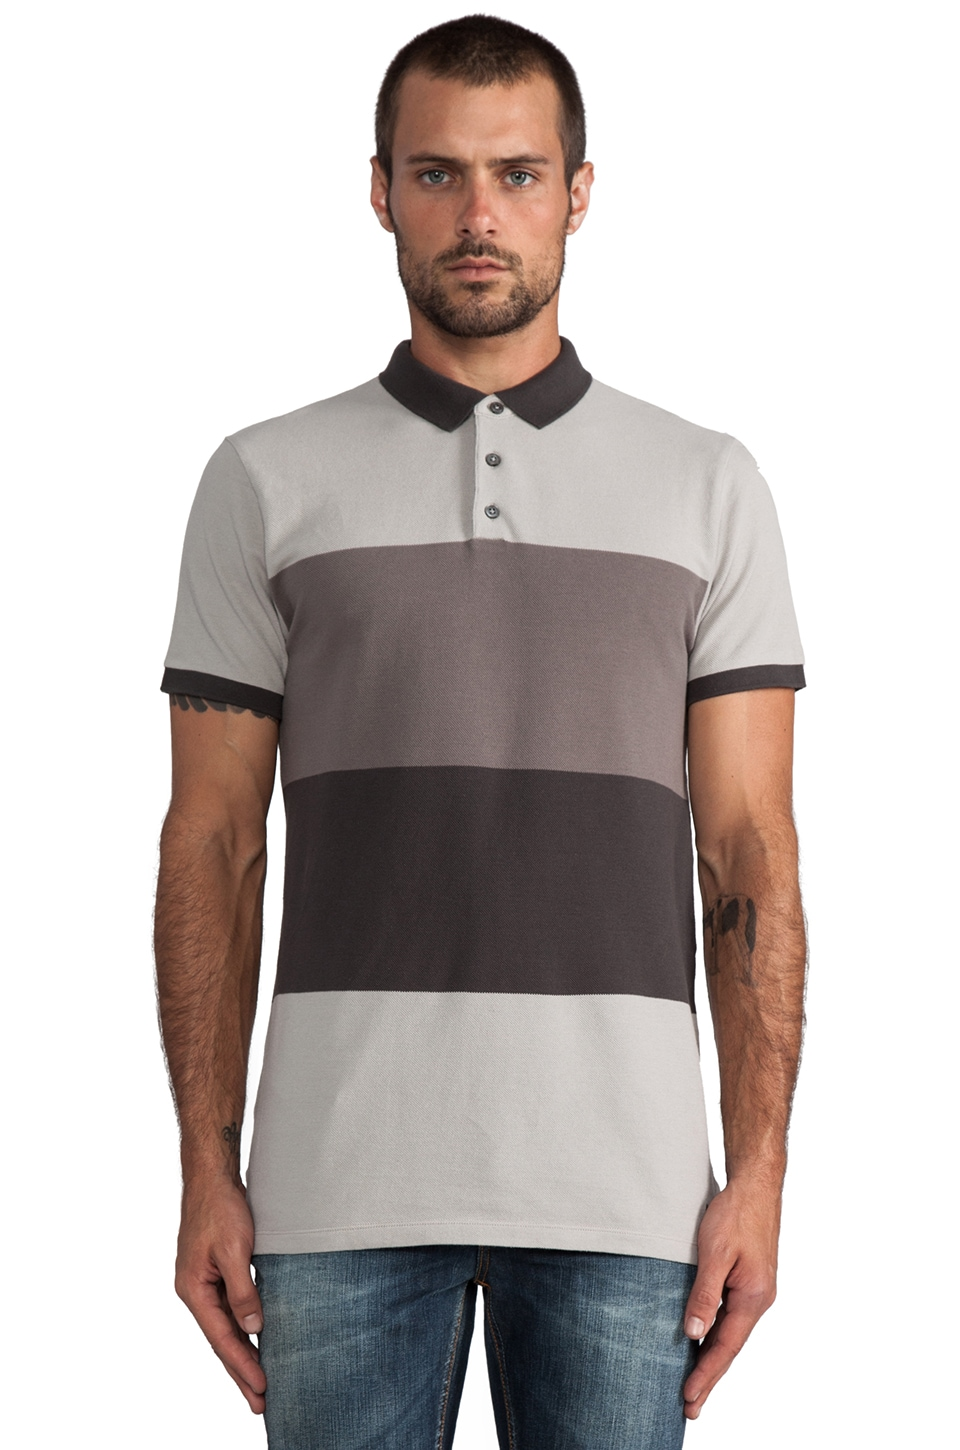 Marc by Marc Jacobs Newport Polo in Opal Grey Multi